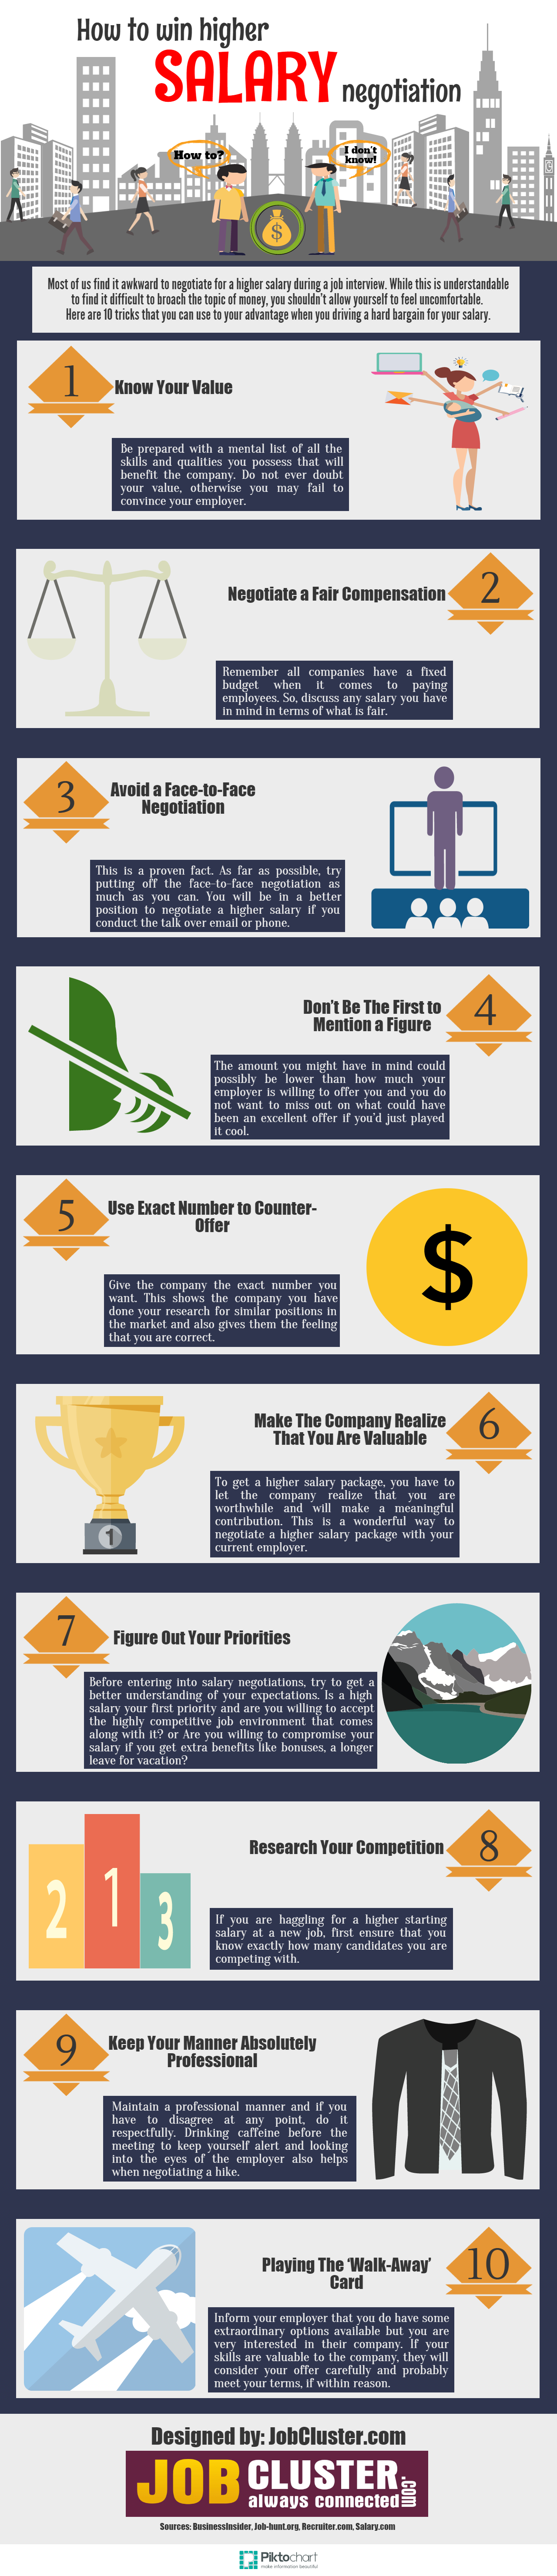 10 Tips To Win A Salary Negotiation